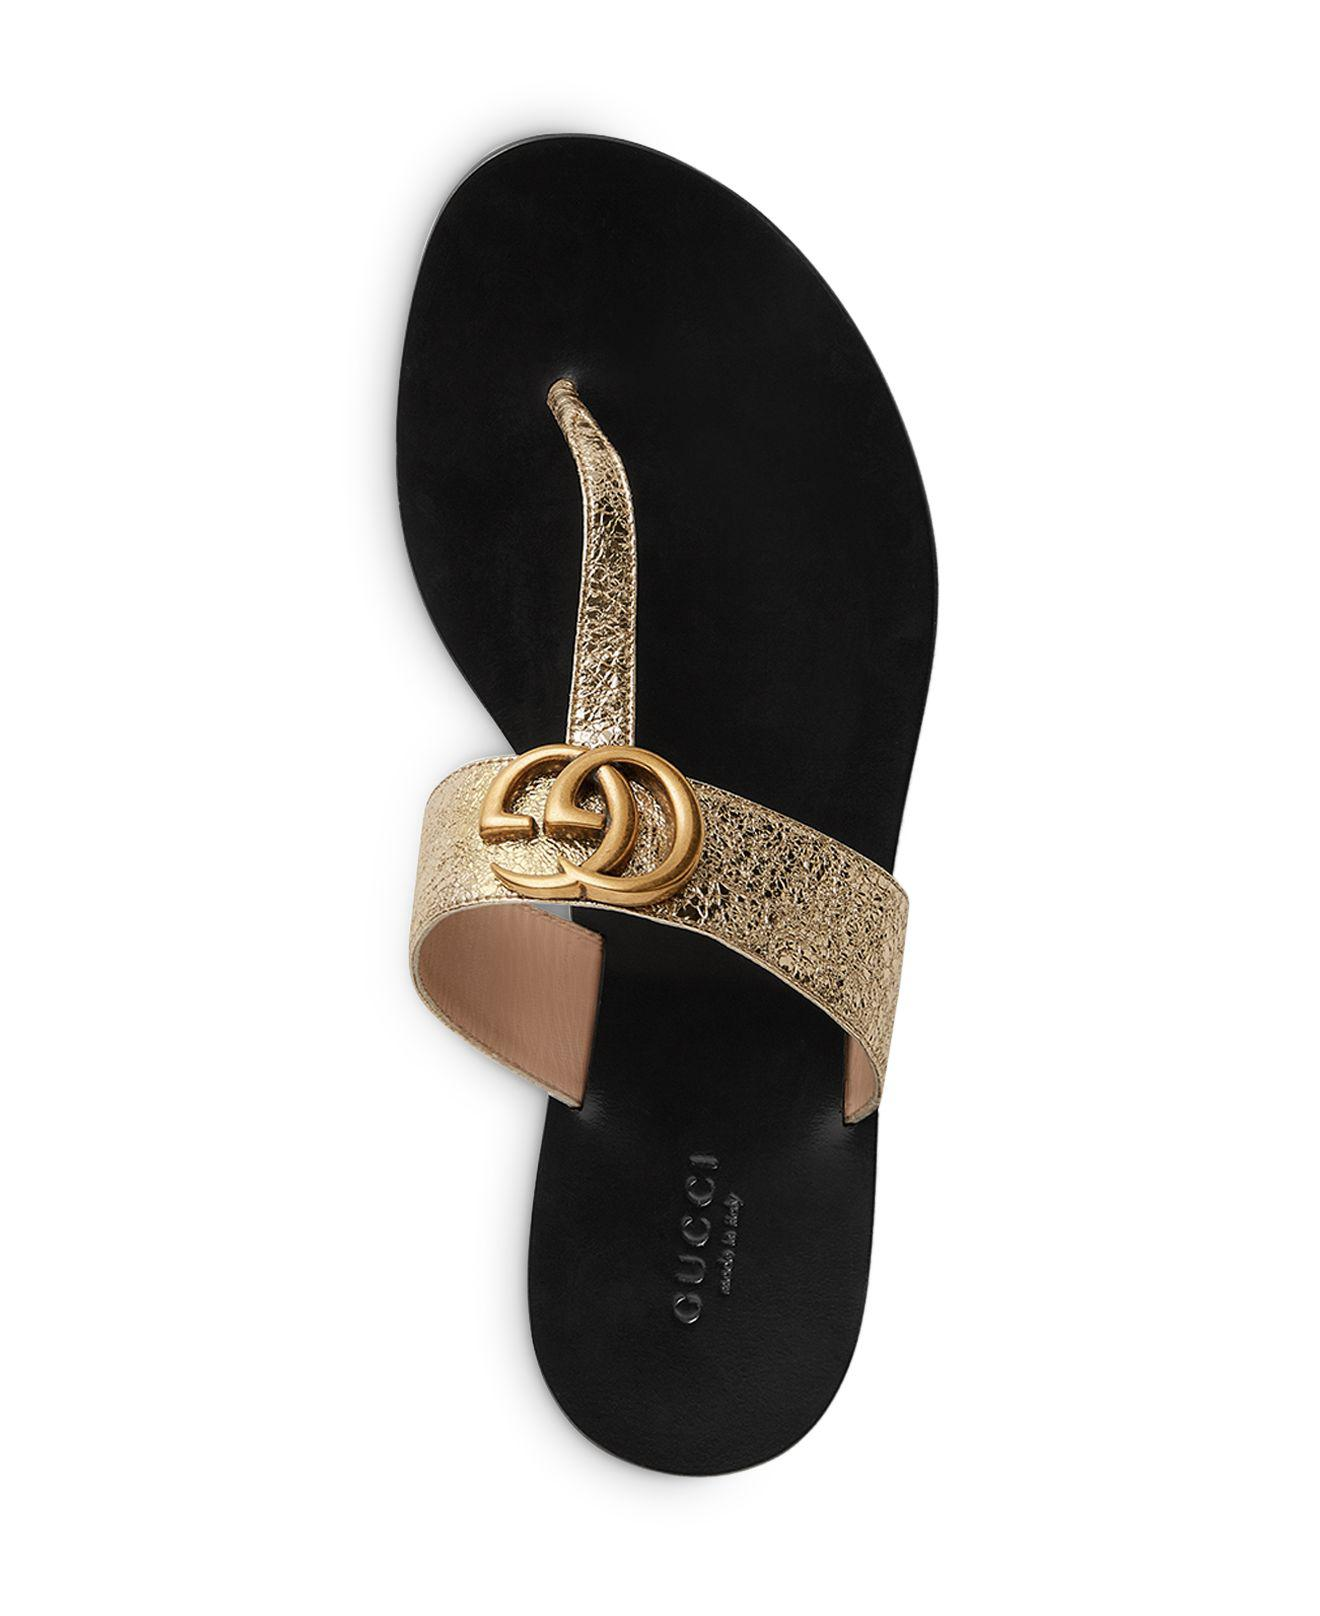 ac40d0f6a9b22a Lyst - Gucci Women s Marmont Leather Thong Sandals